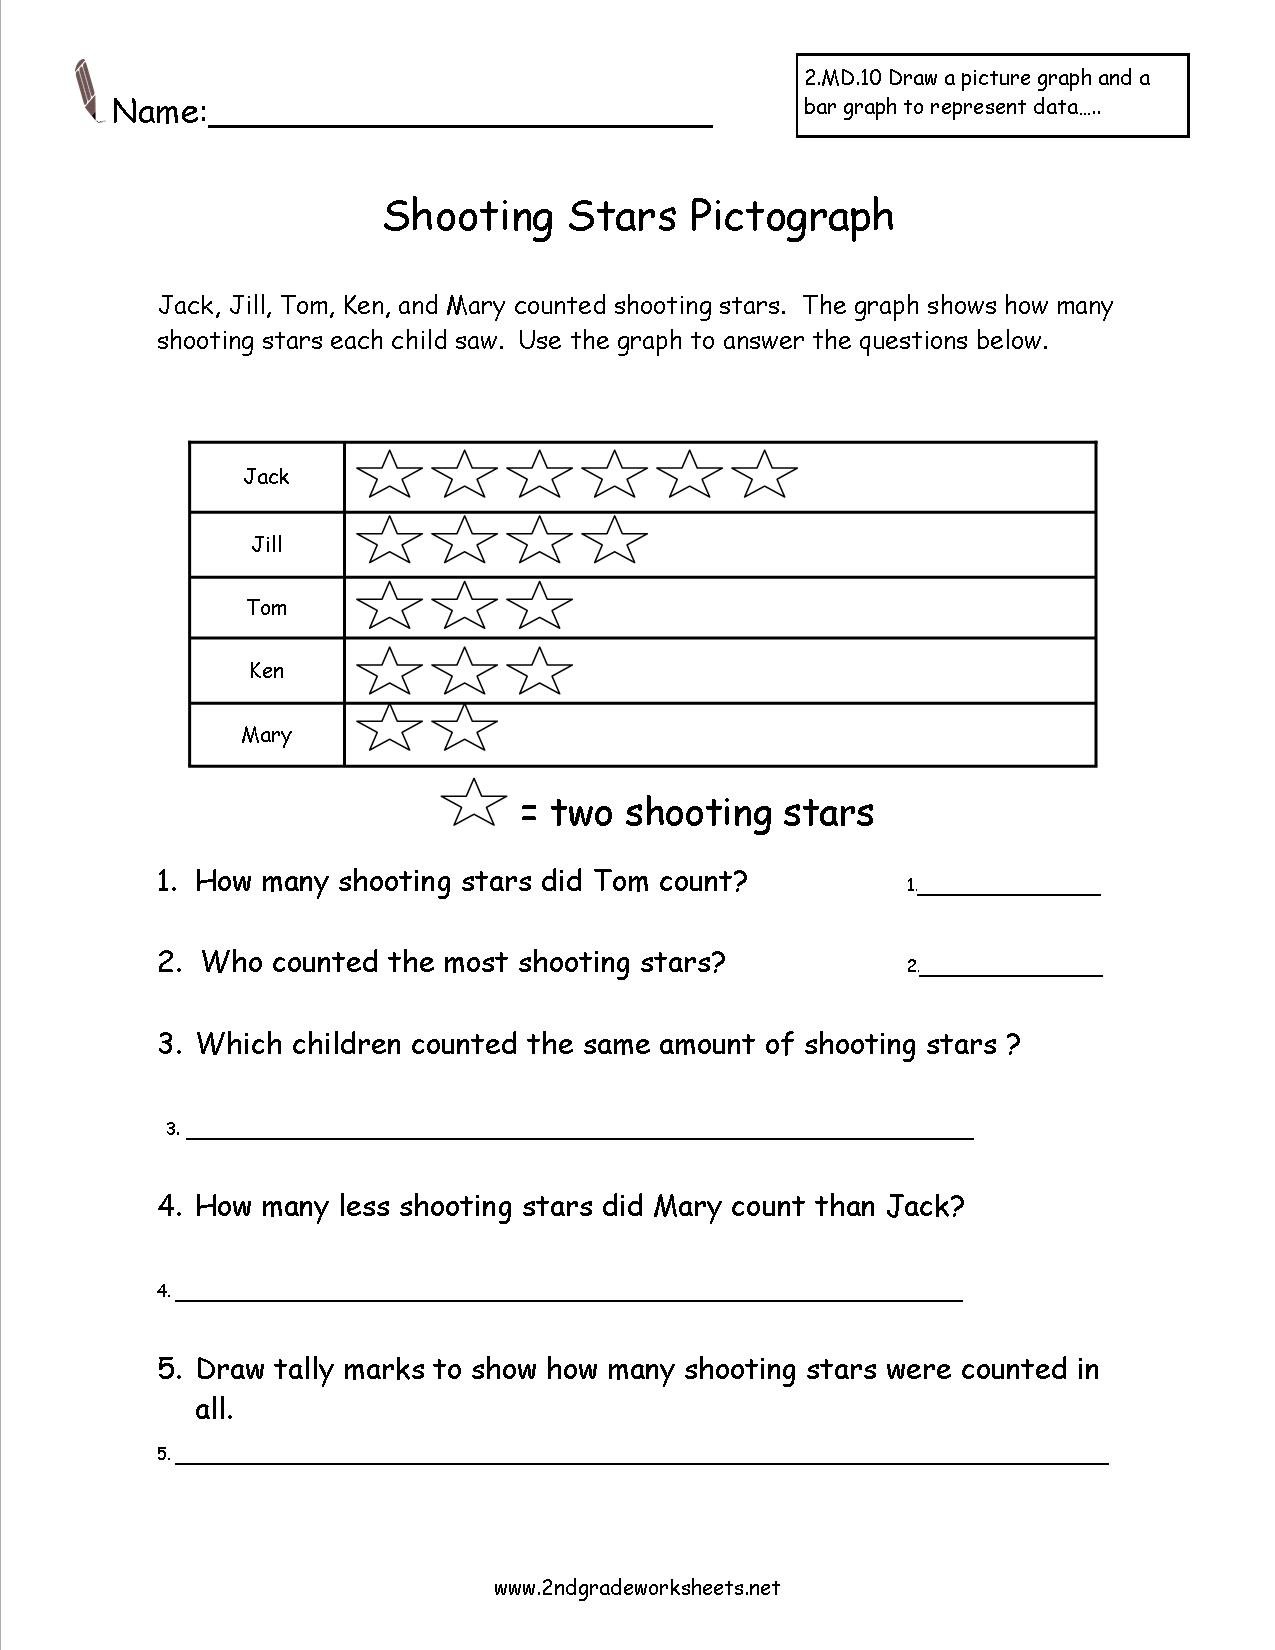 Free Printable Pictograph Worksheets 1st Grade